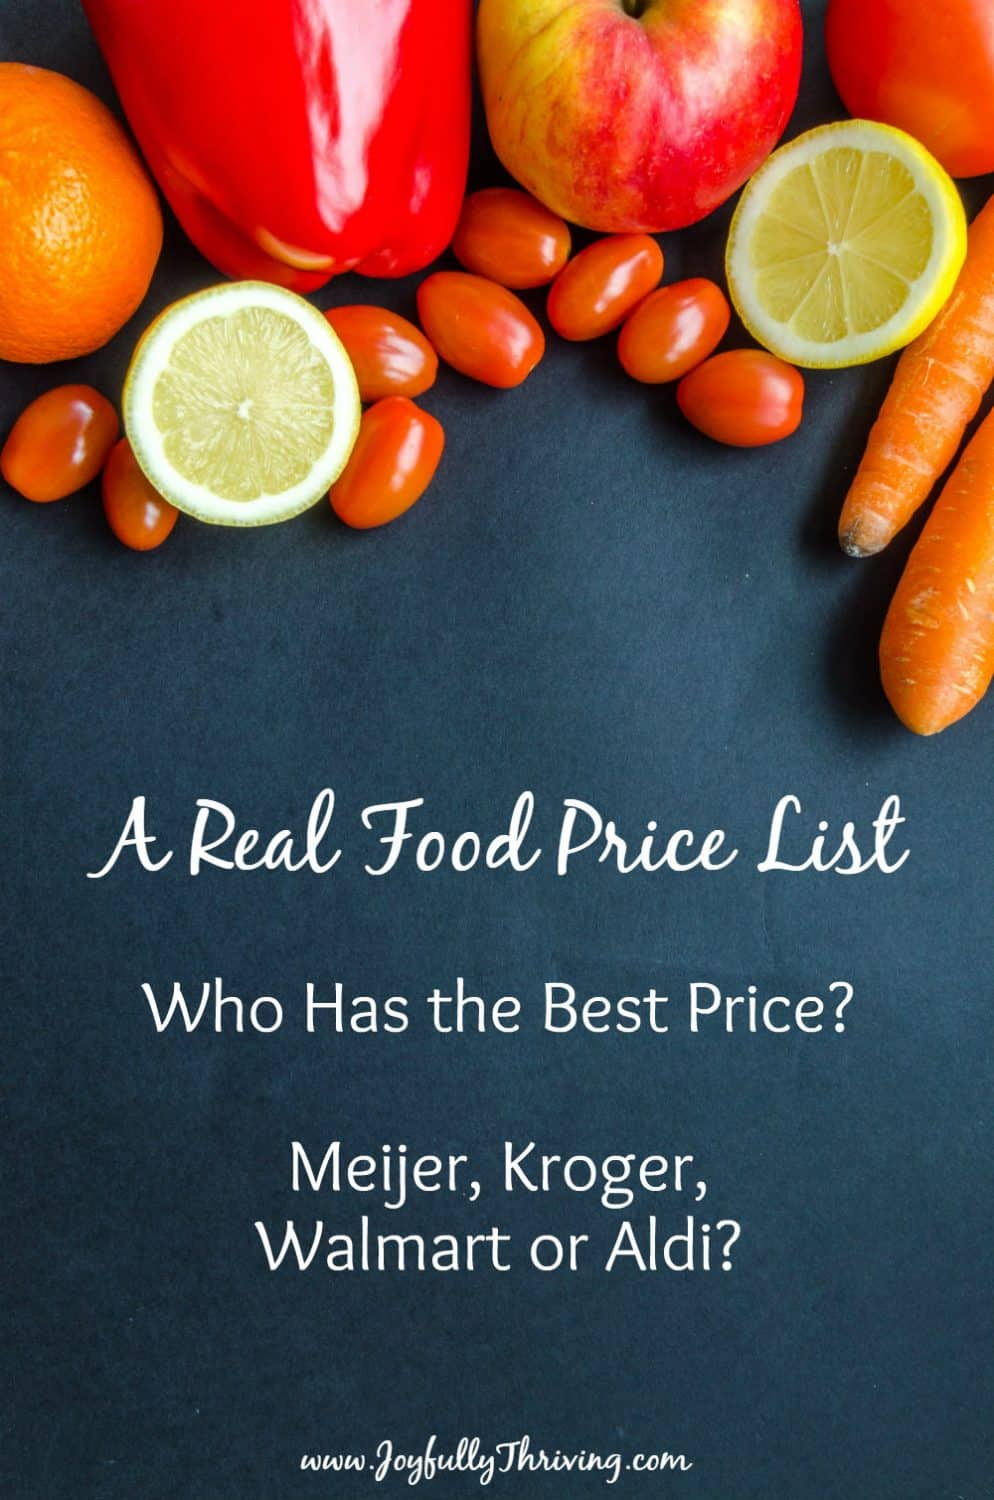 Finally! A real food price list for healthy foods! You can compare to see if Meijer or Kroger, Walmart or Aldi has the best price. Plus, it has stock up prices and a free printable price list! #realfood